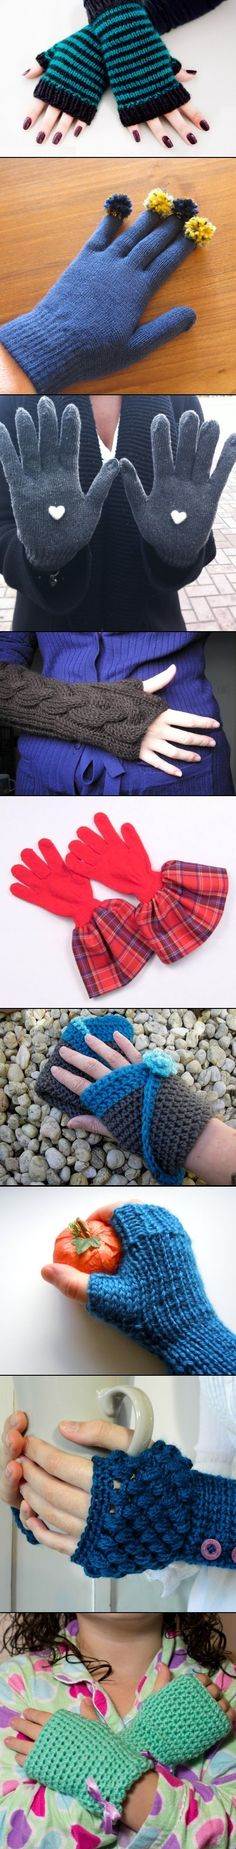 DIY Gloves ~ I pinned this here because I wear one glove when I am at the computer, my pinning hand, LOL. It keeps my hand from hurting. Maybe arthritis. Similar to glove 2 w/o the pom-poms. Cool Diy Projects, Sewing Projects, Fitness And Beauty Tips, Diy Pins, Diy Interior, Diy Clothing, Handmade Clothes, Handicraft, Diy Home Crafts